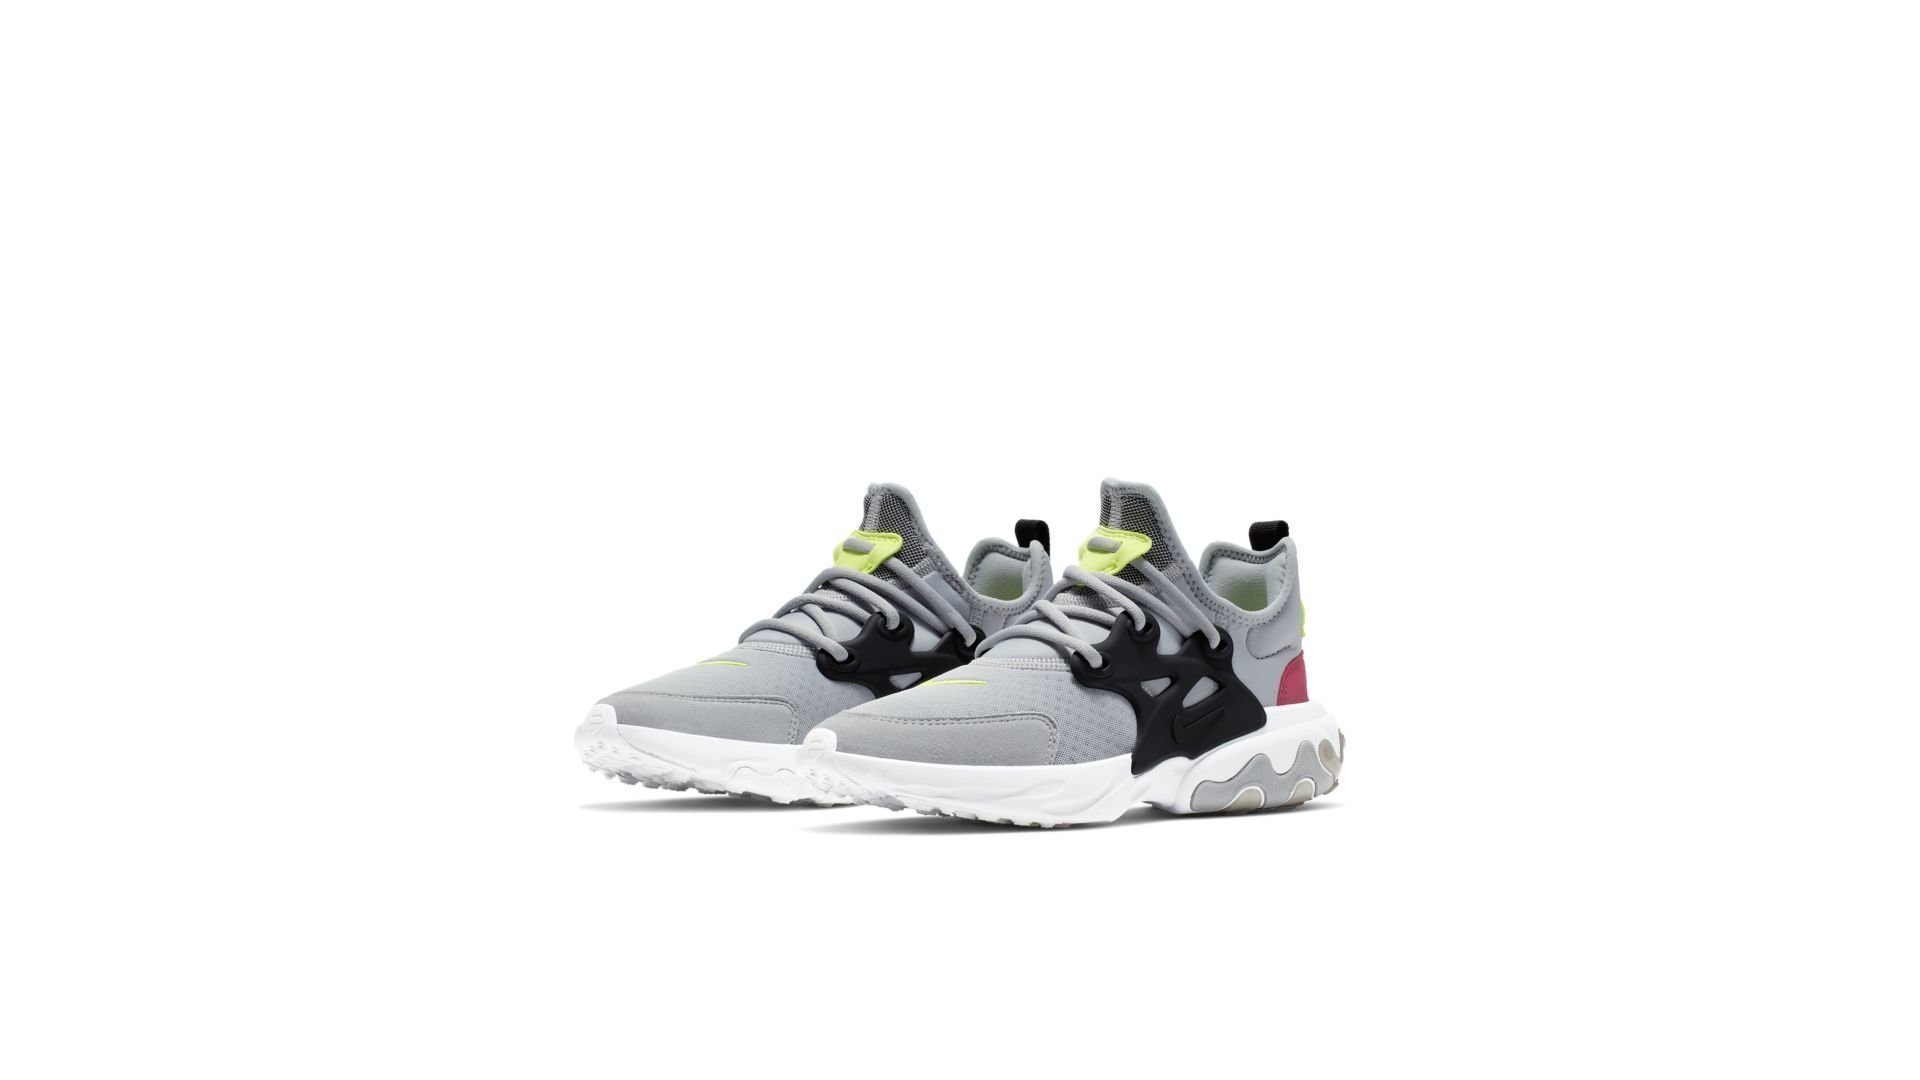 Nike React Presto Wolf Grey Black Rush Pink Volt (GS) (BQ4002-004)